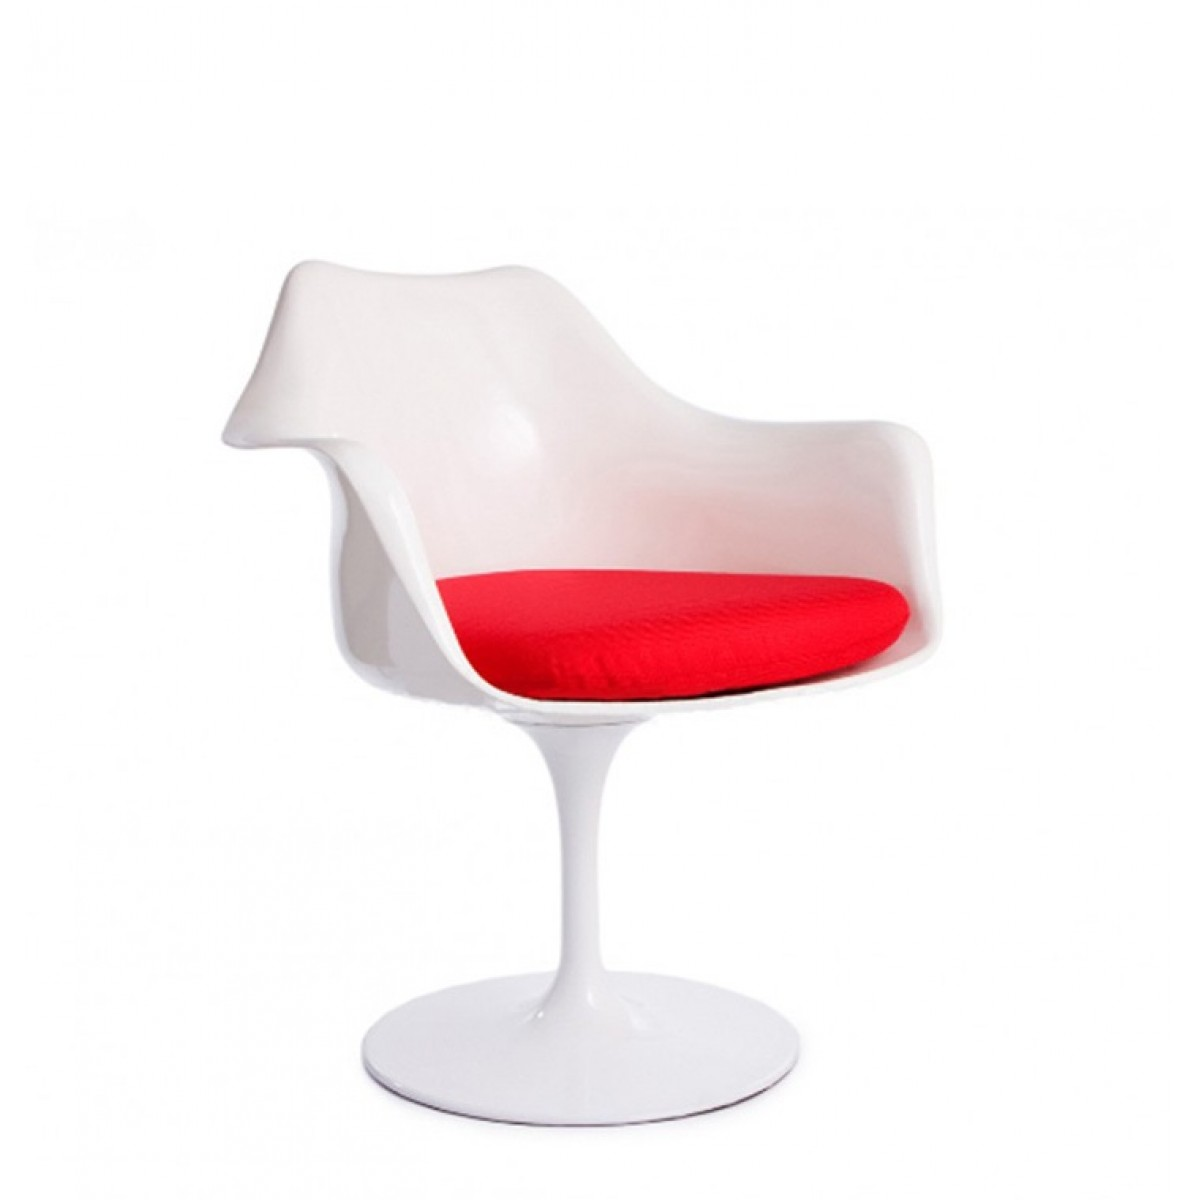 Tulip Chair Reproduction Eero Saarinen Style Tulip Arm Chair White Replica